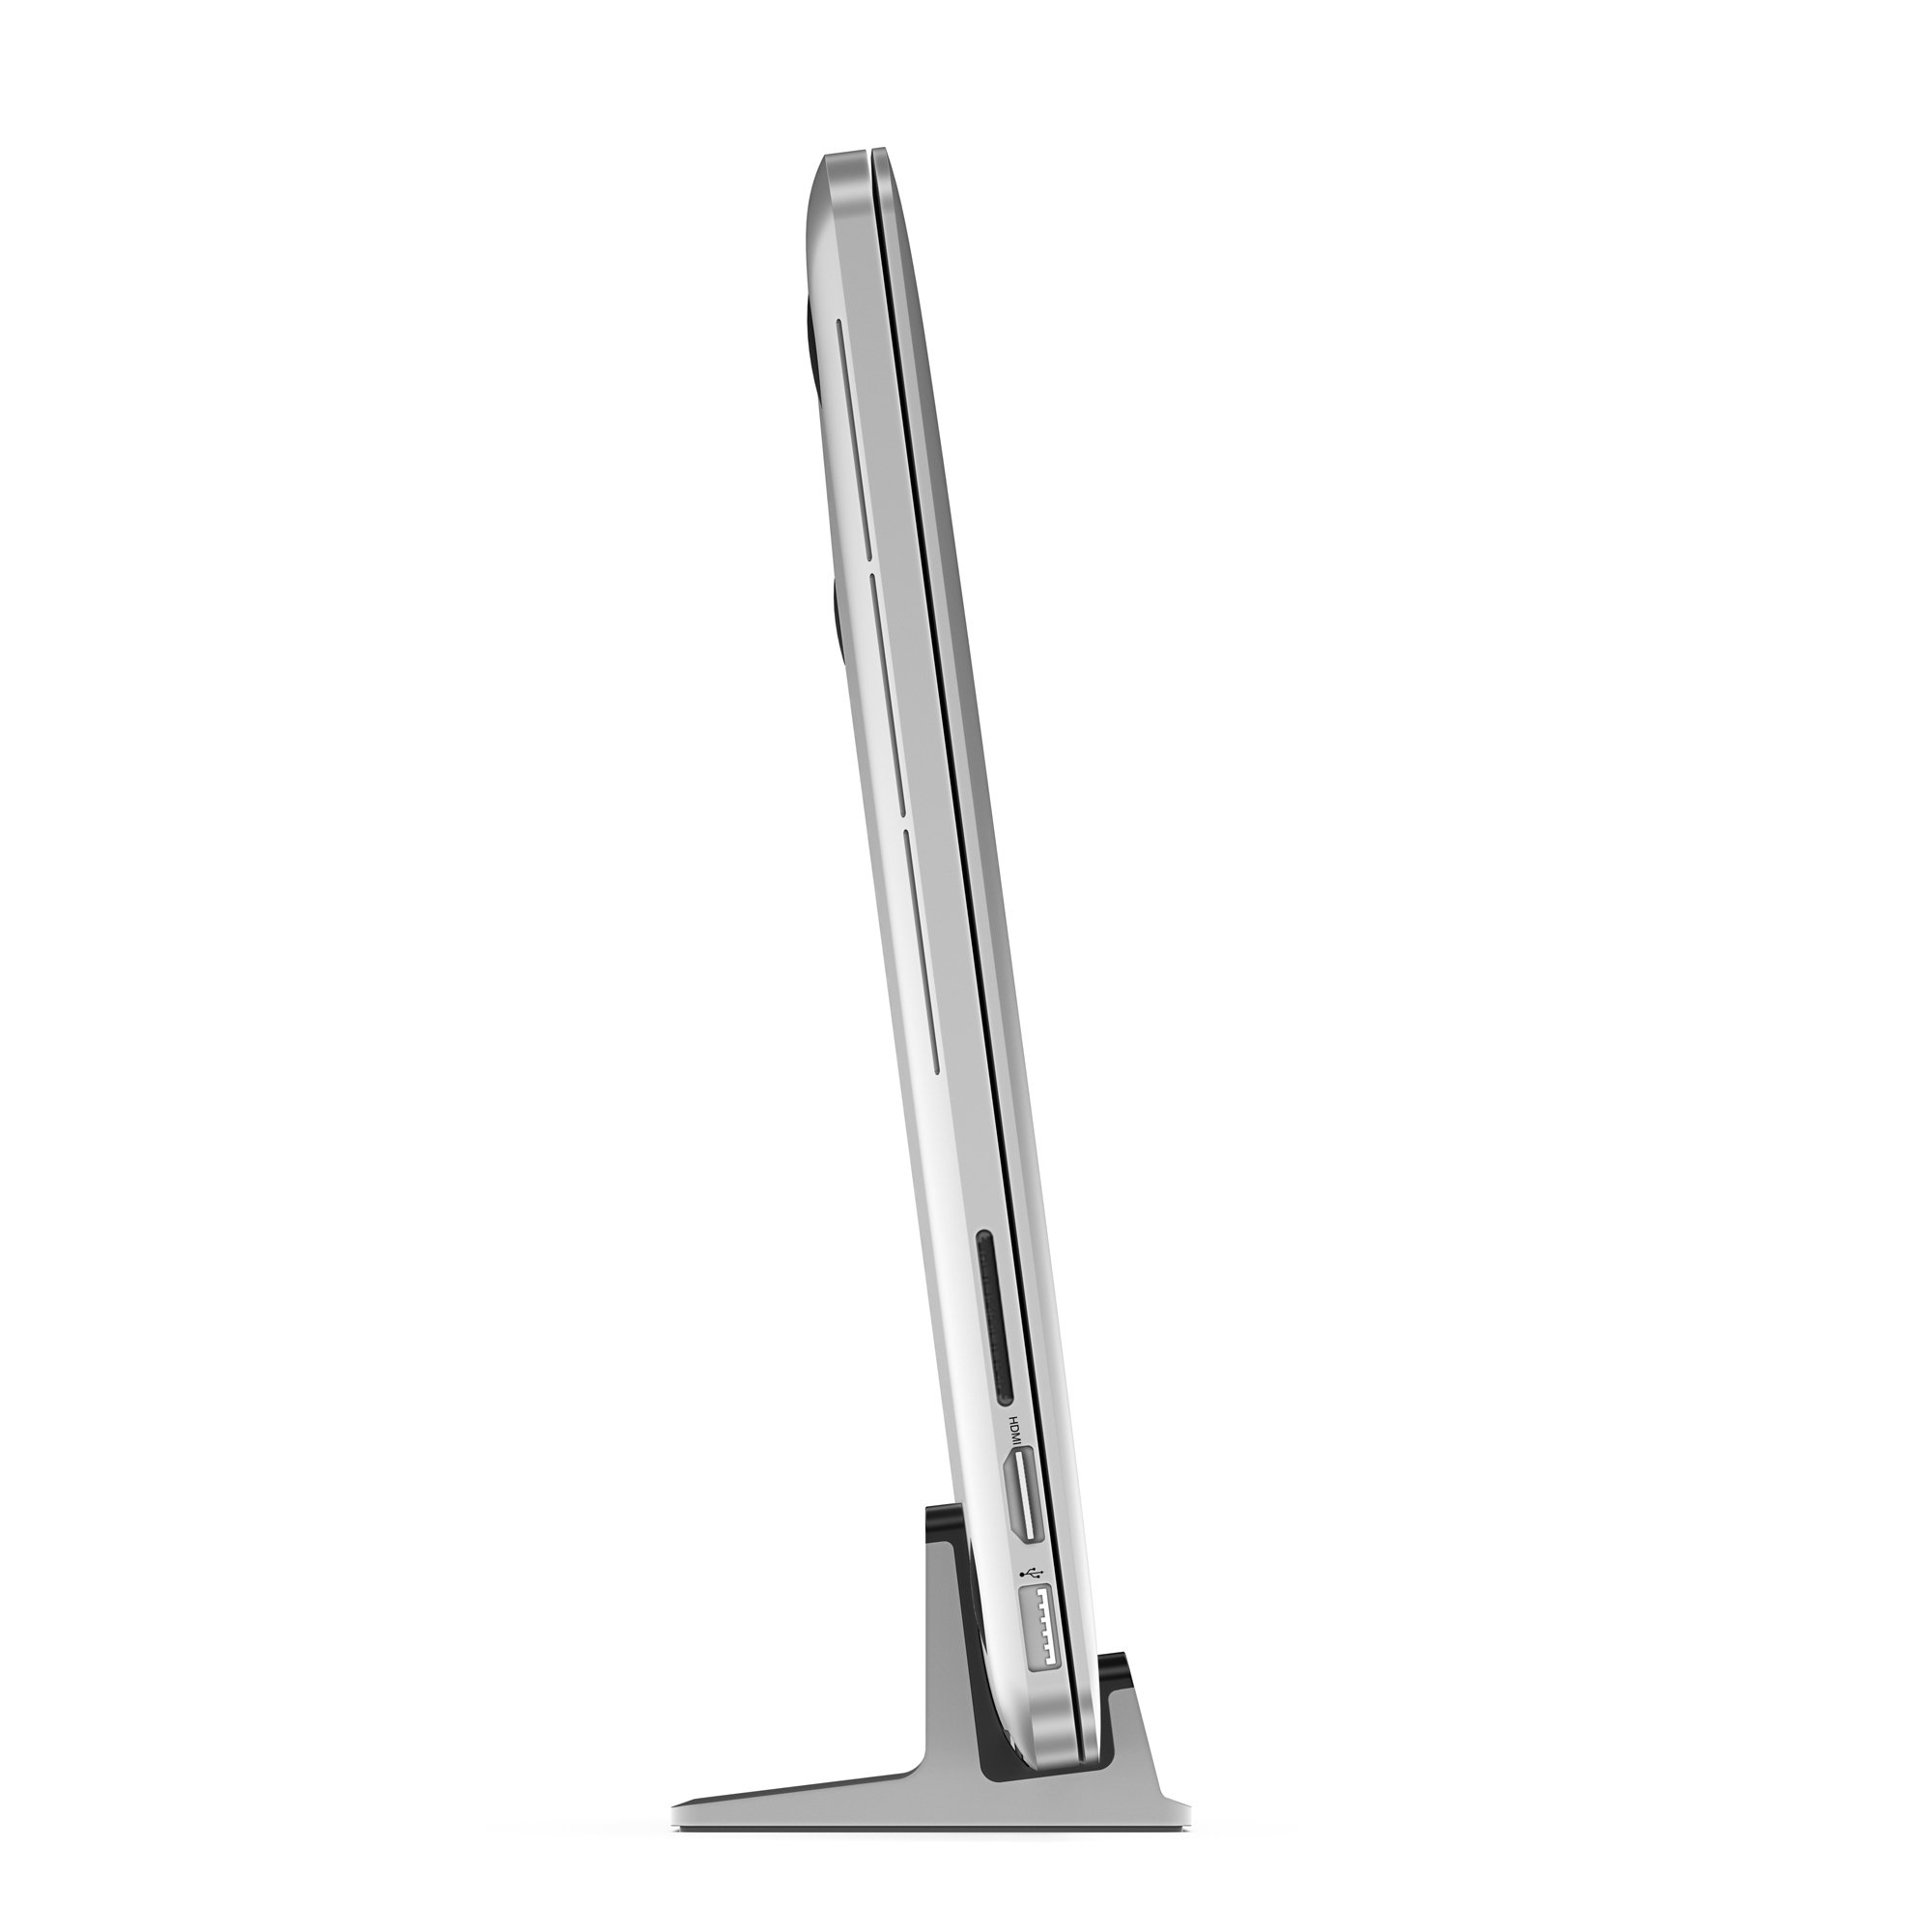 UPPERCASE KRADL Pro Small Profile Aluminum Vertical Stand for Retina MacBook Pro 13'' or 15'' (2012 to 2015 Releases), Silver/Black by UPPERCASE (Image #6)